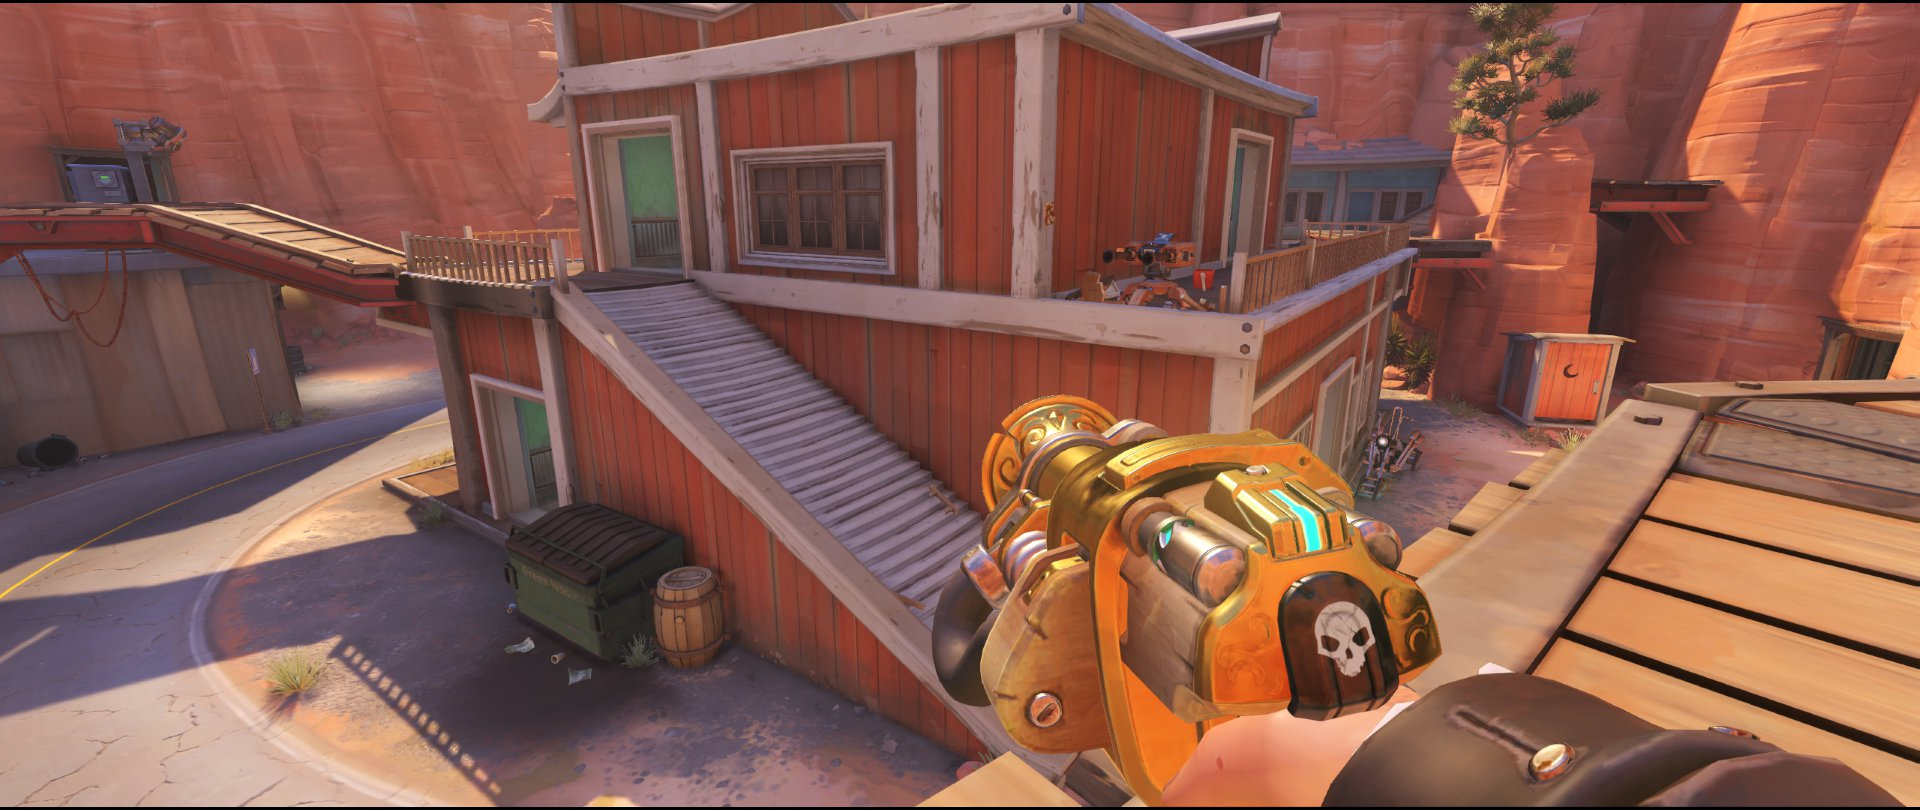 Pub high ground turret placement Torbjorn Route 66 Overwatch